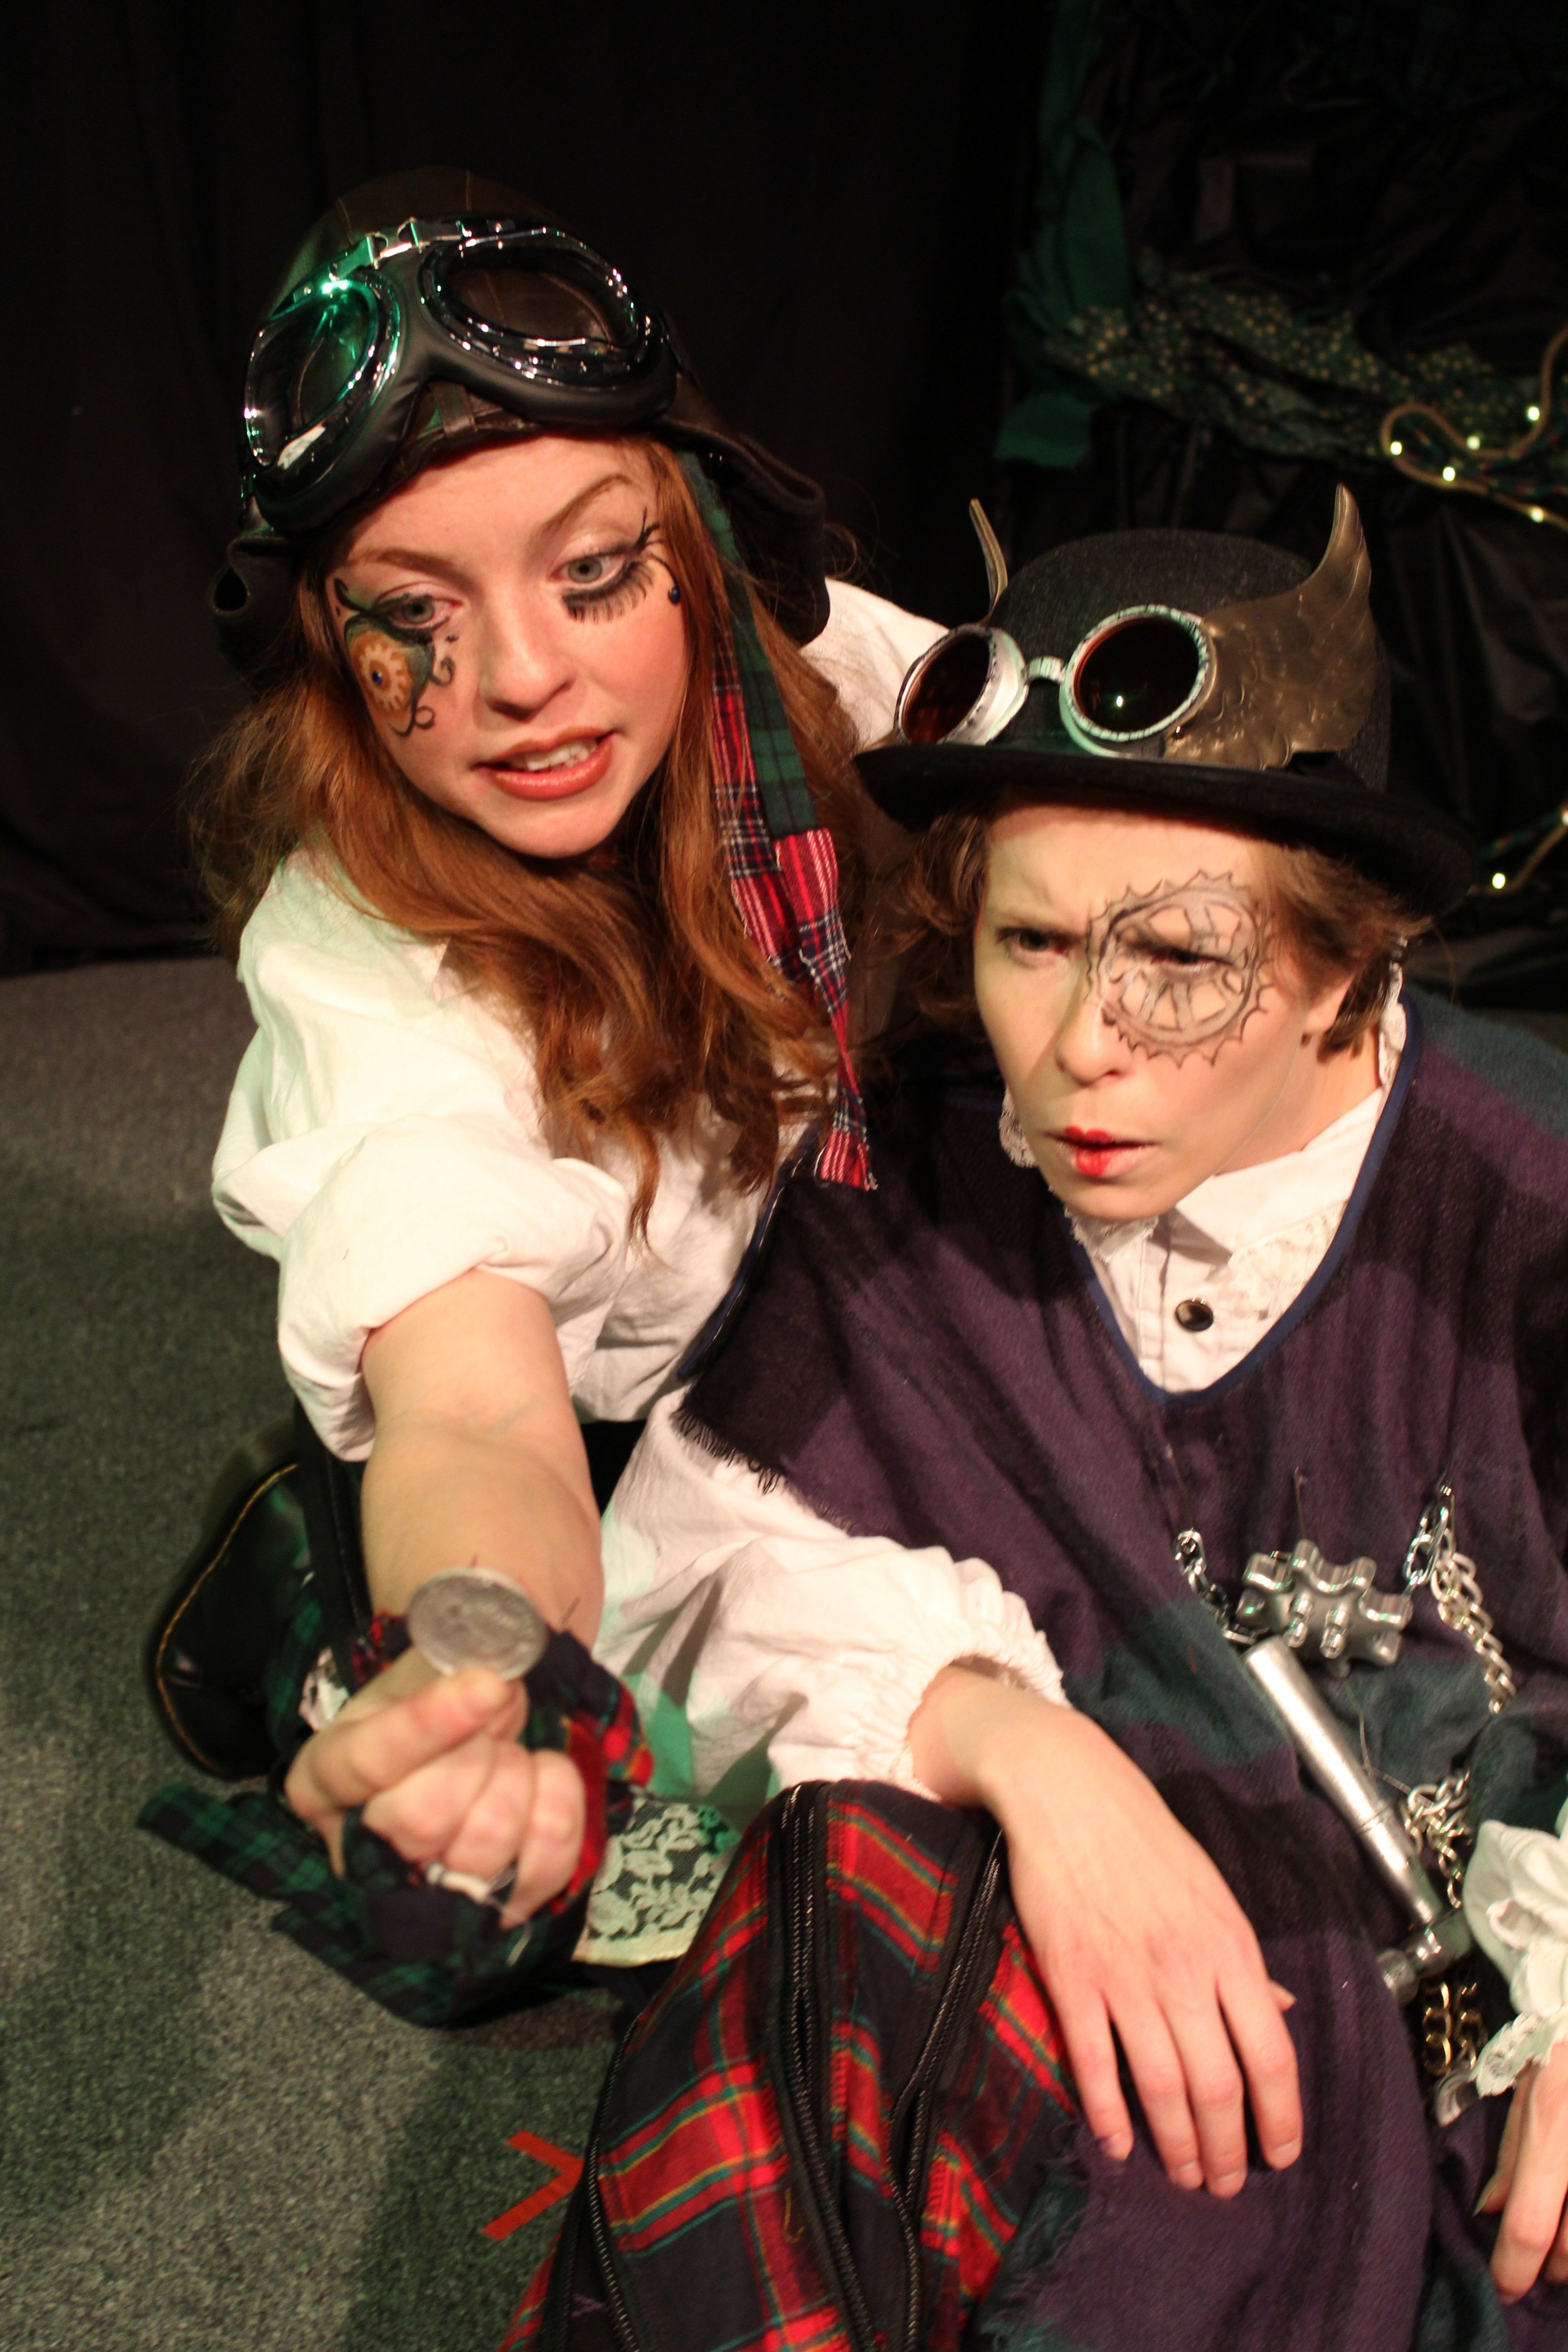 Karin Carr as  The Lass and  Veronica Straight-Lingo as The Tinker